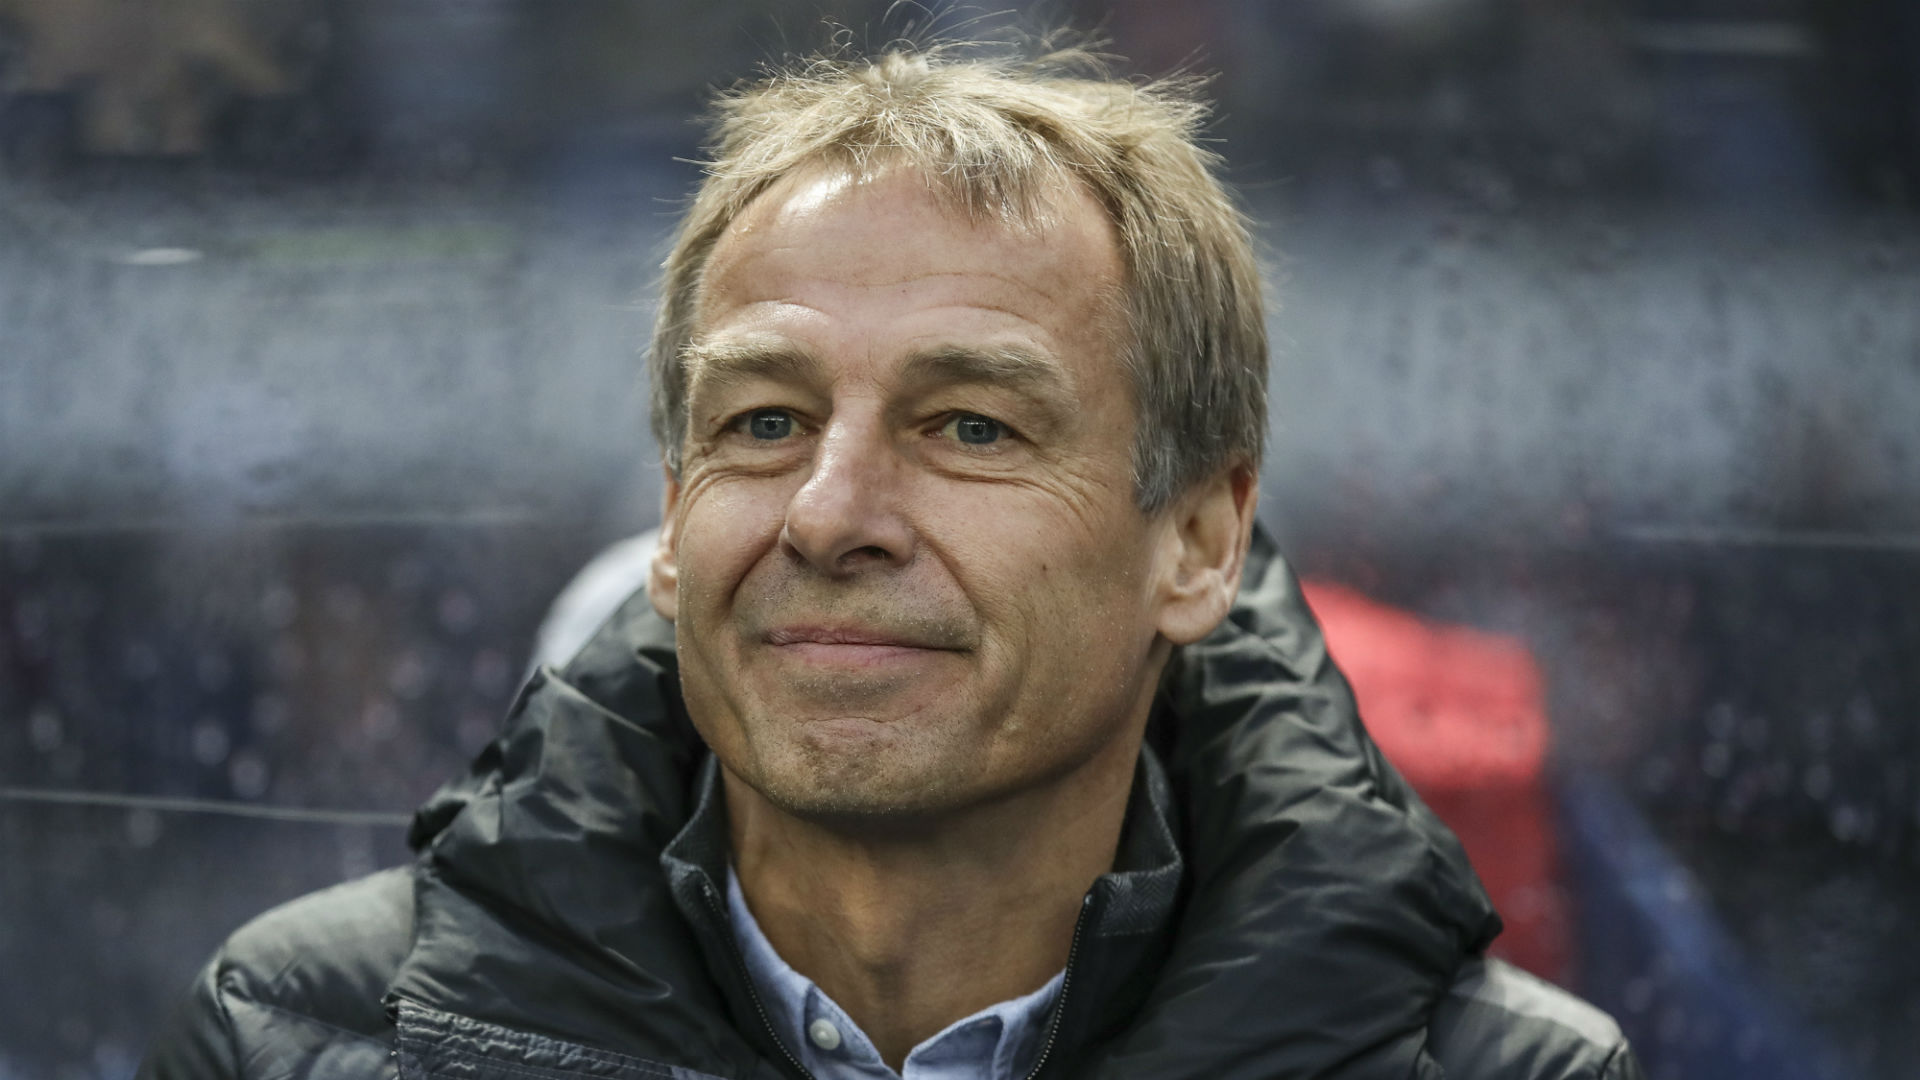 Jürgen Klinsmann resigns as Hertha Berlin manager after 10 weeks